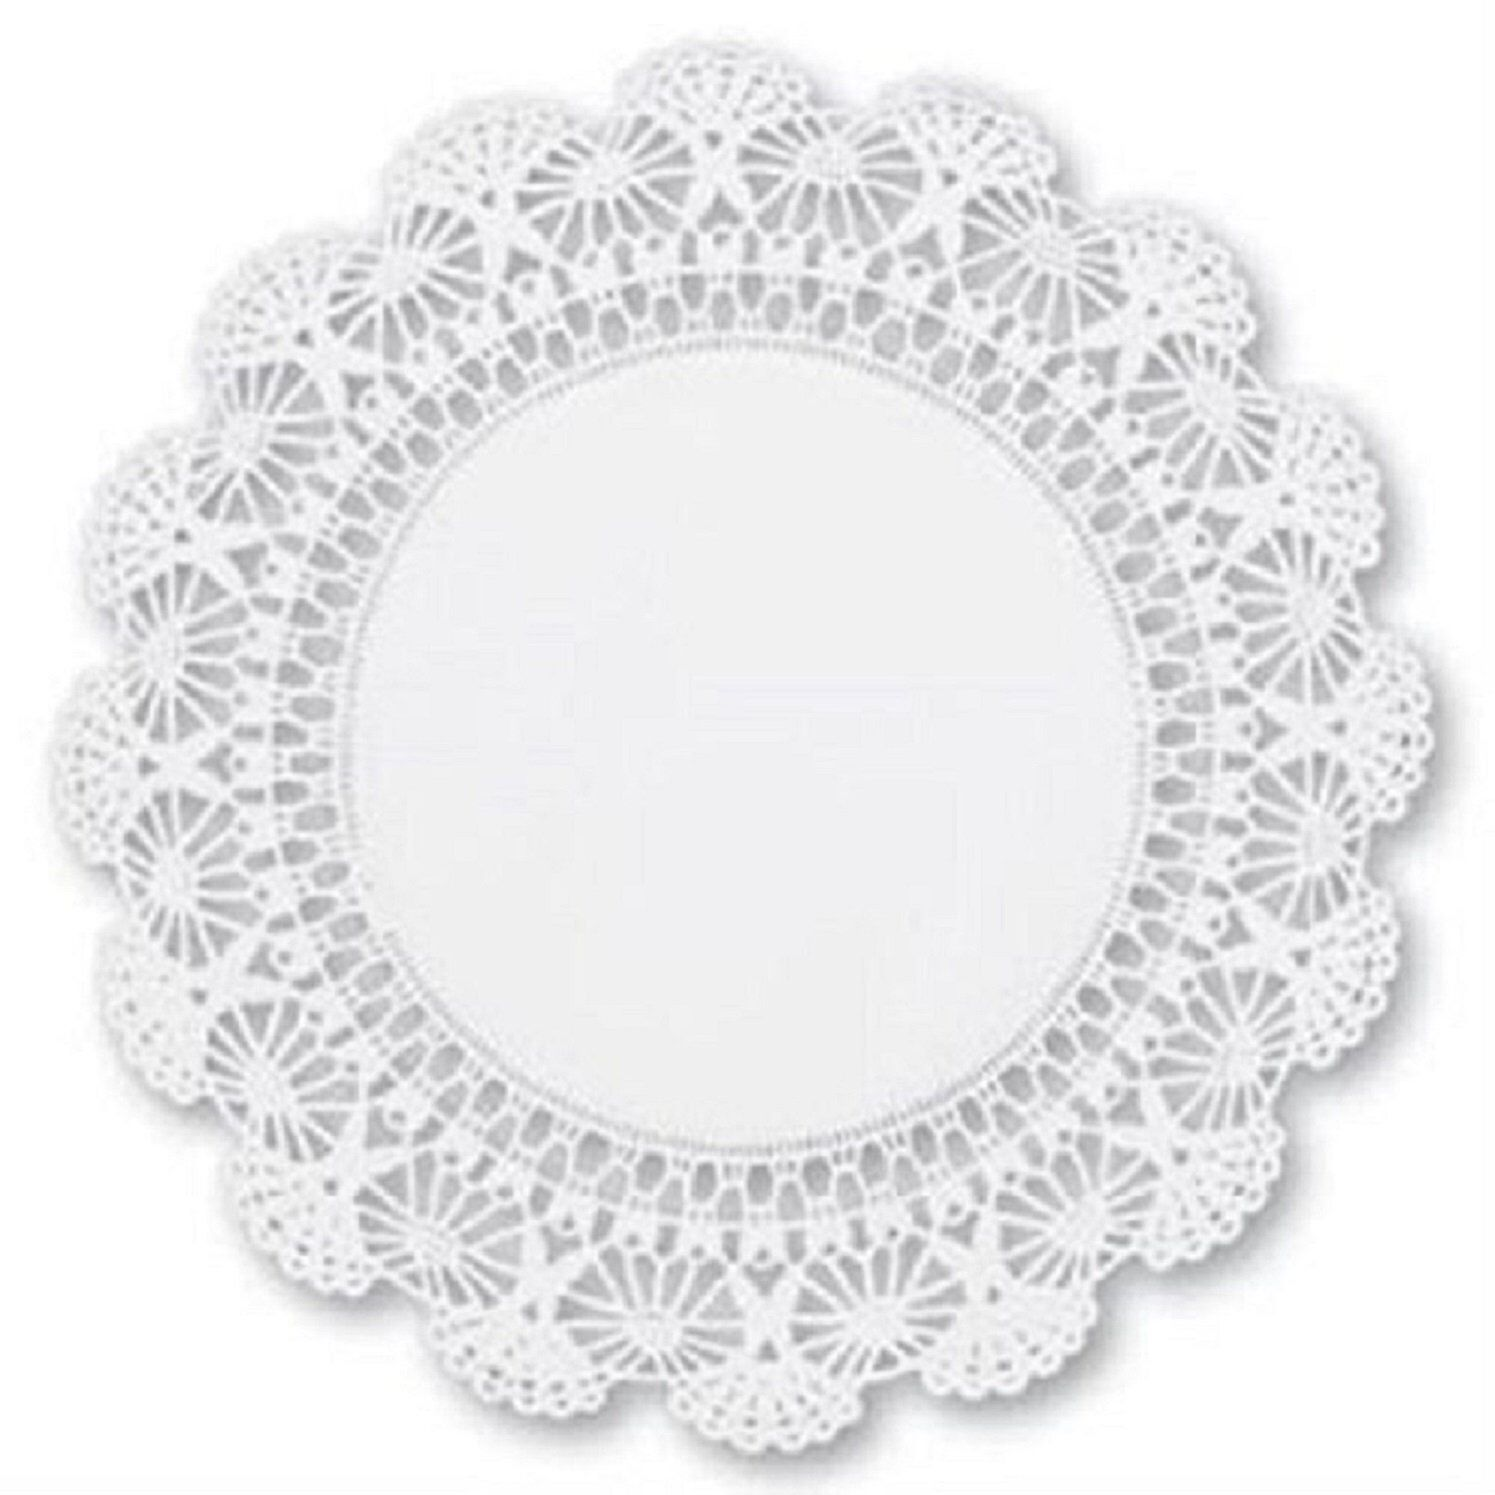 100 Ct 8 Cambridge Paper Lace Doilies White Round Doily